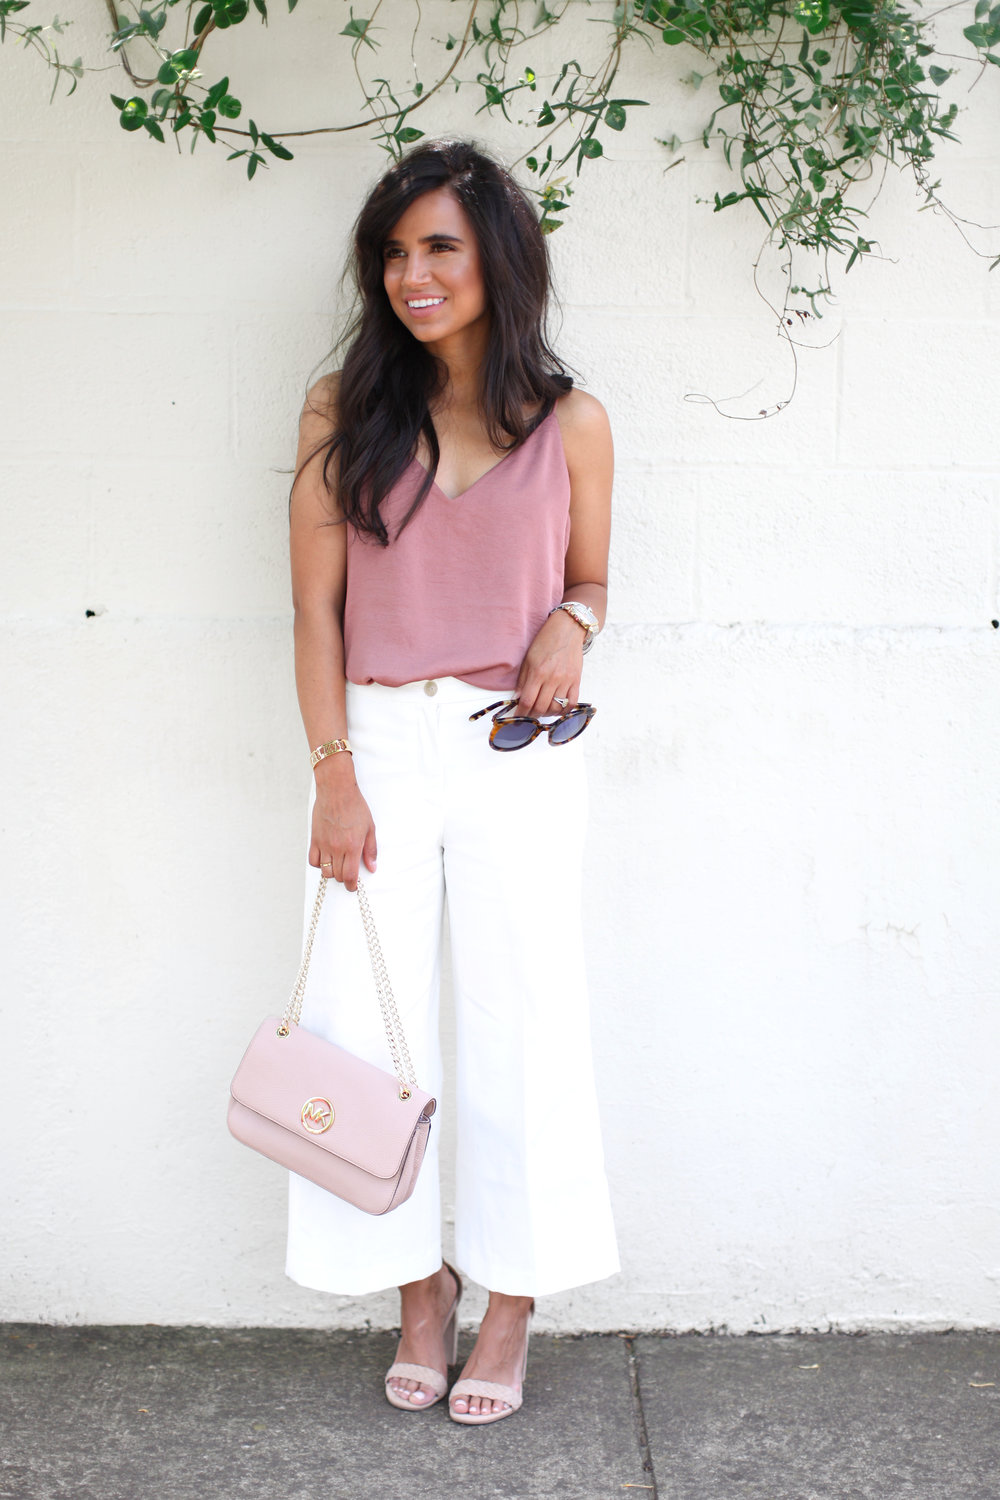 I HAVE THIS CAMI IN EVERY COLOR! IT'S A SUMMER MUST HAVE! - TOP : EXPRESS (SHOP HERE) PANTS : ANN TAYLOR (SHOP HERE) SHOES : STEVE MADDEN (SHOP HERE) HANDBAG : MICHAEL KORS (SIMILAR HERE) SUNNIES : KAREN WALKER (SHOP HERE)